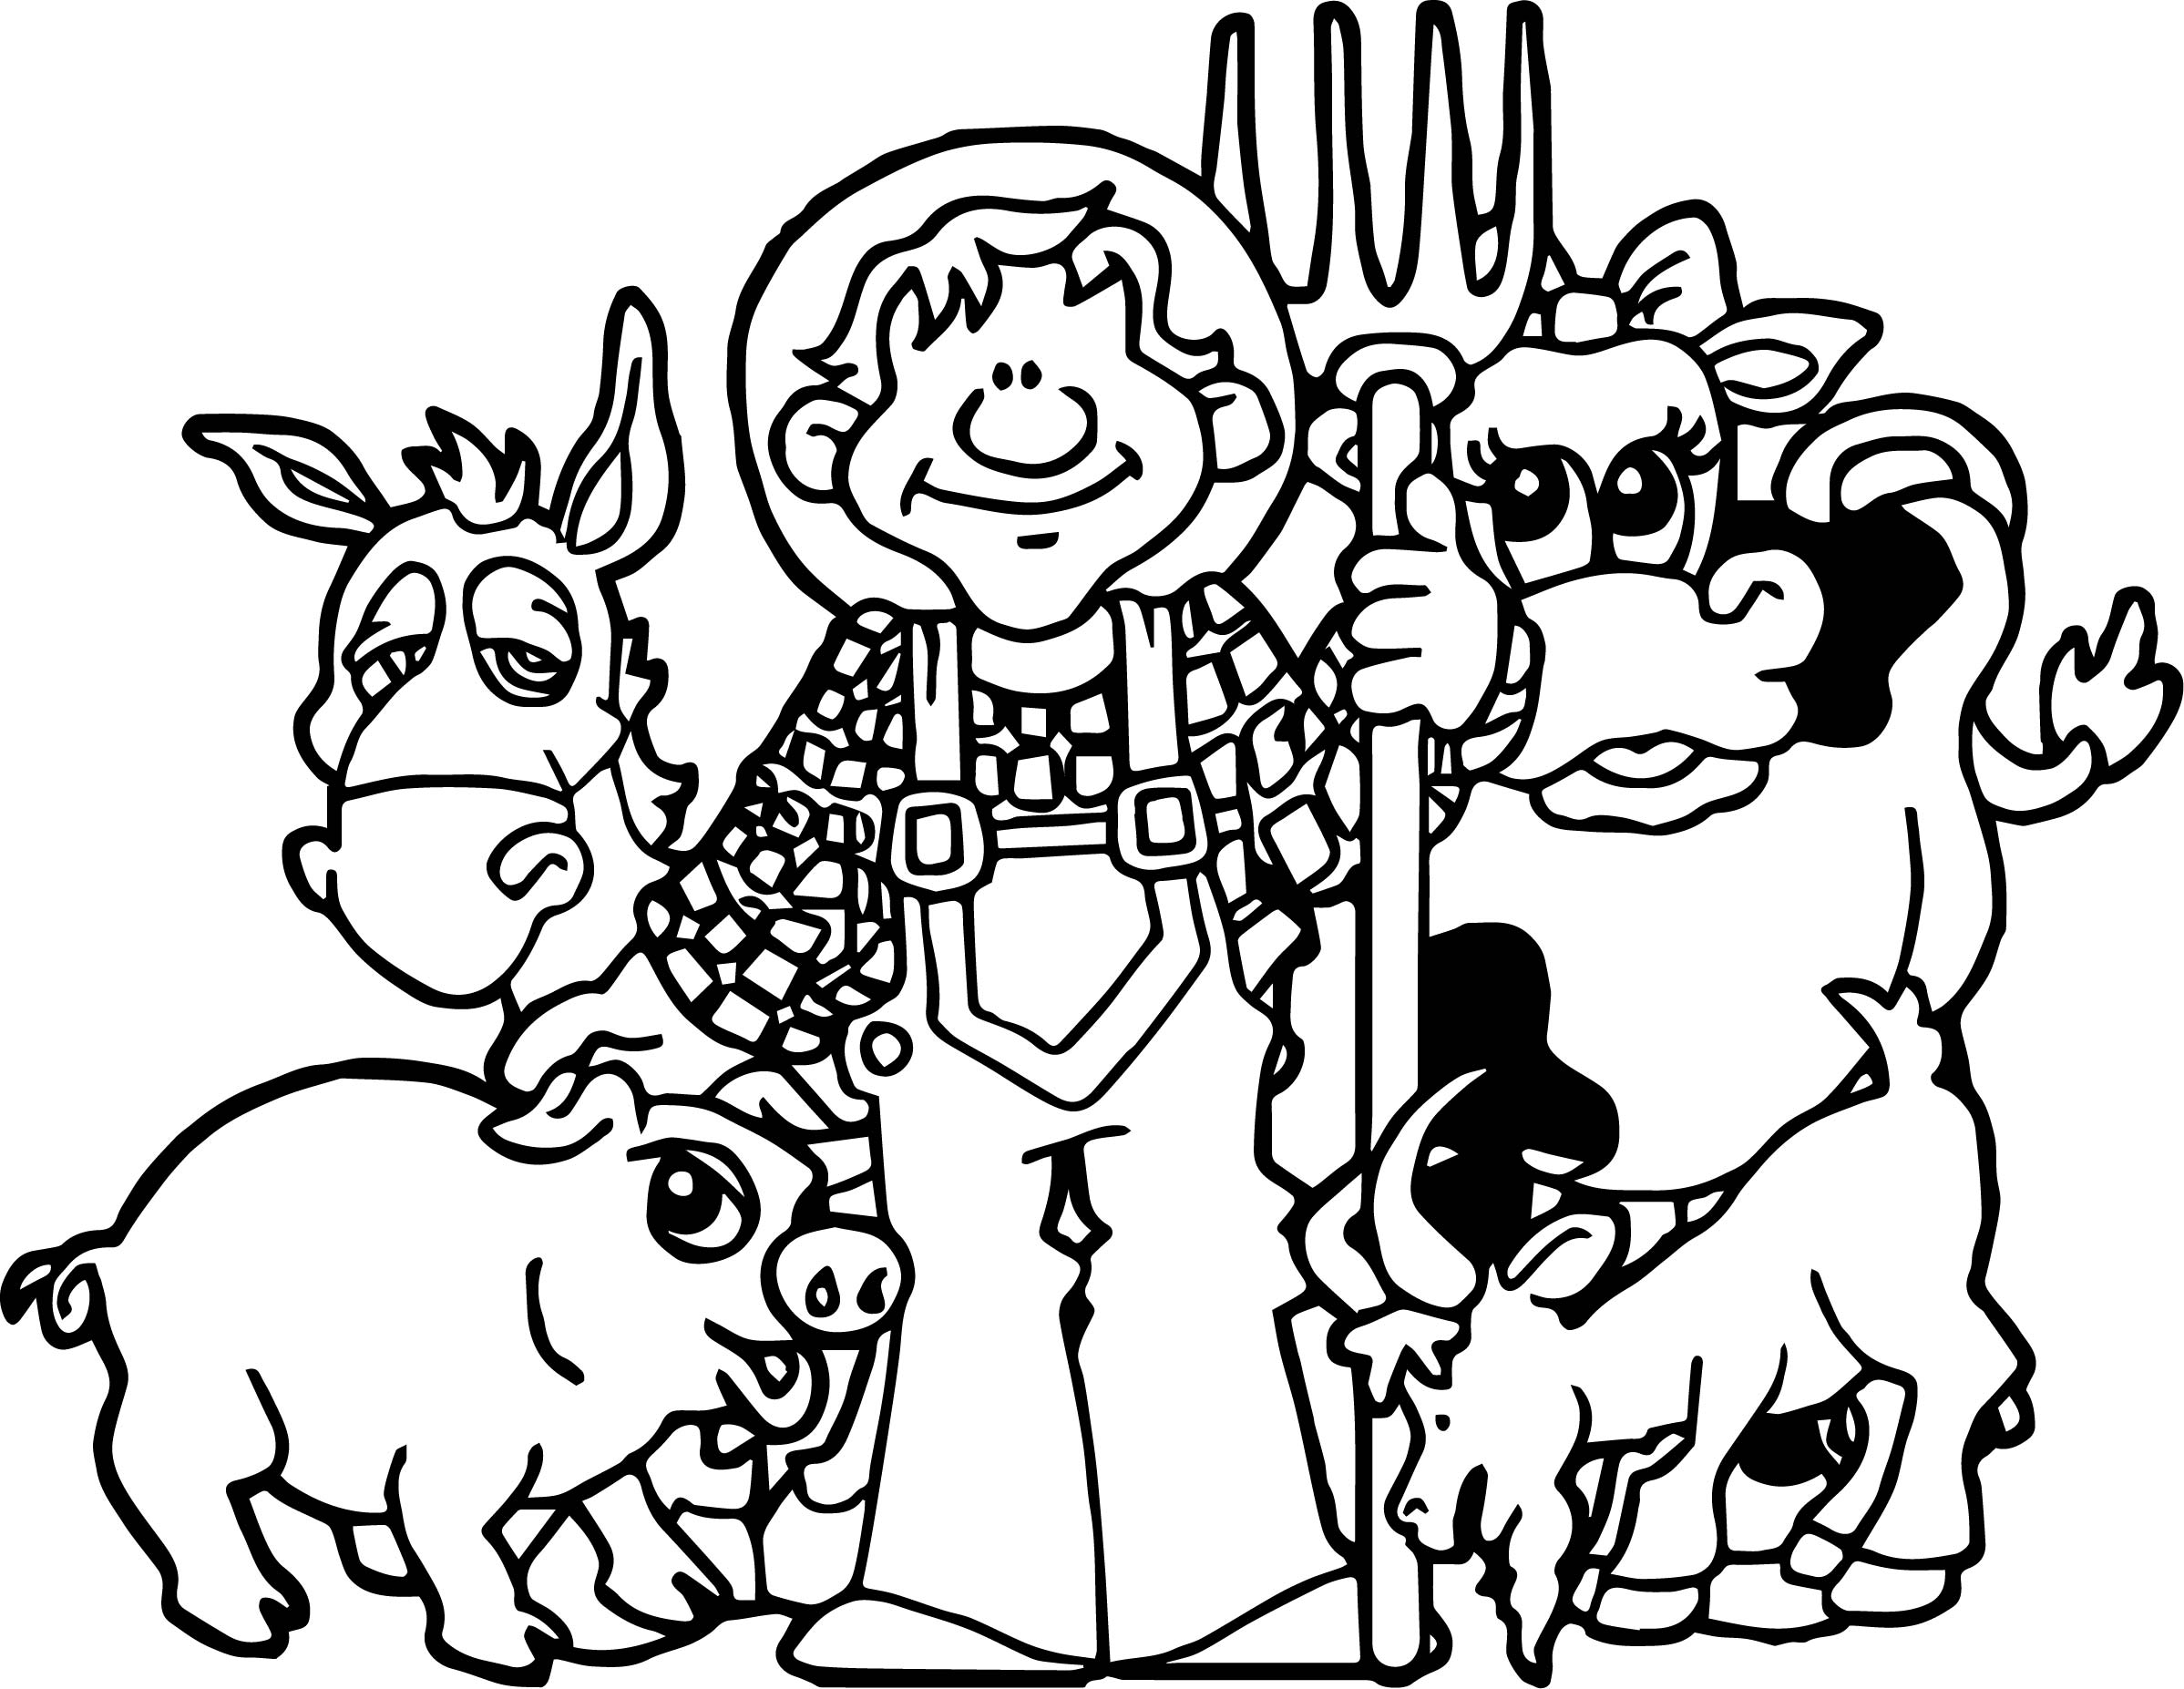 Baby farm animal family coloring page Coloring book pictures of farm animals